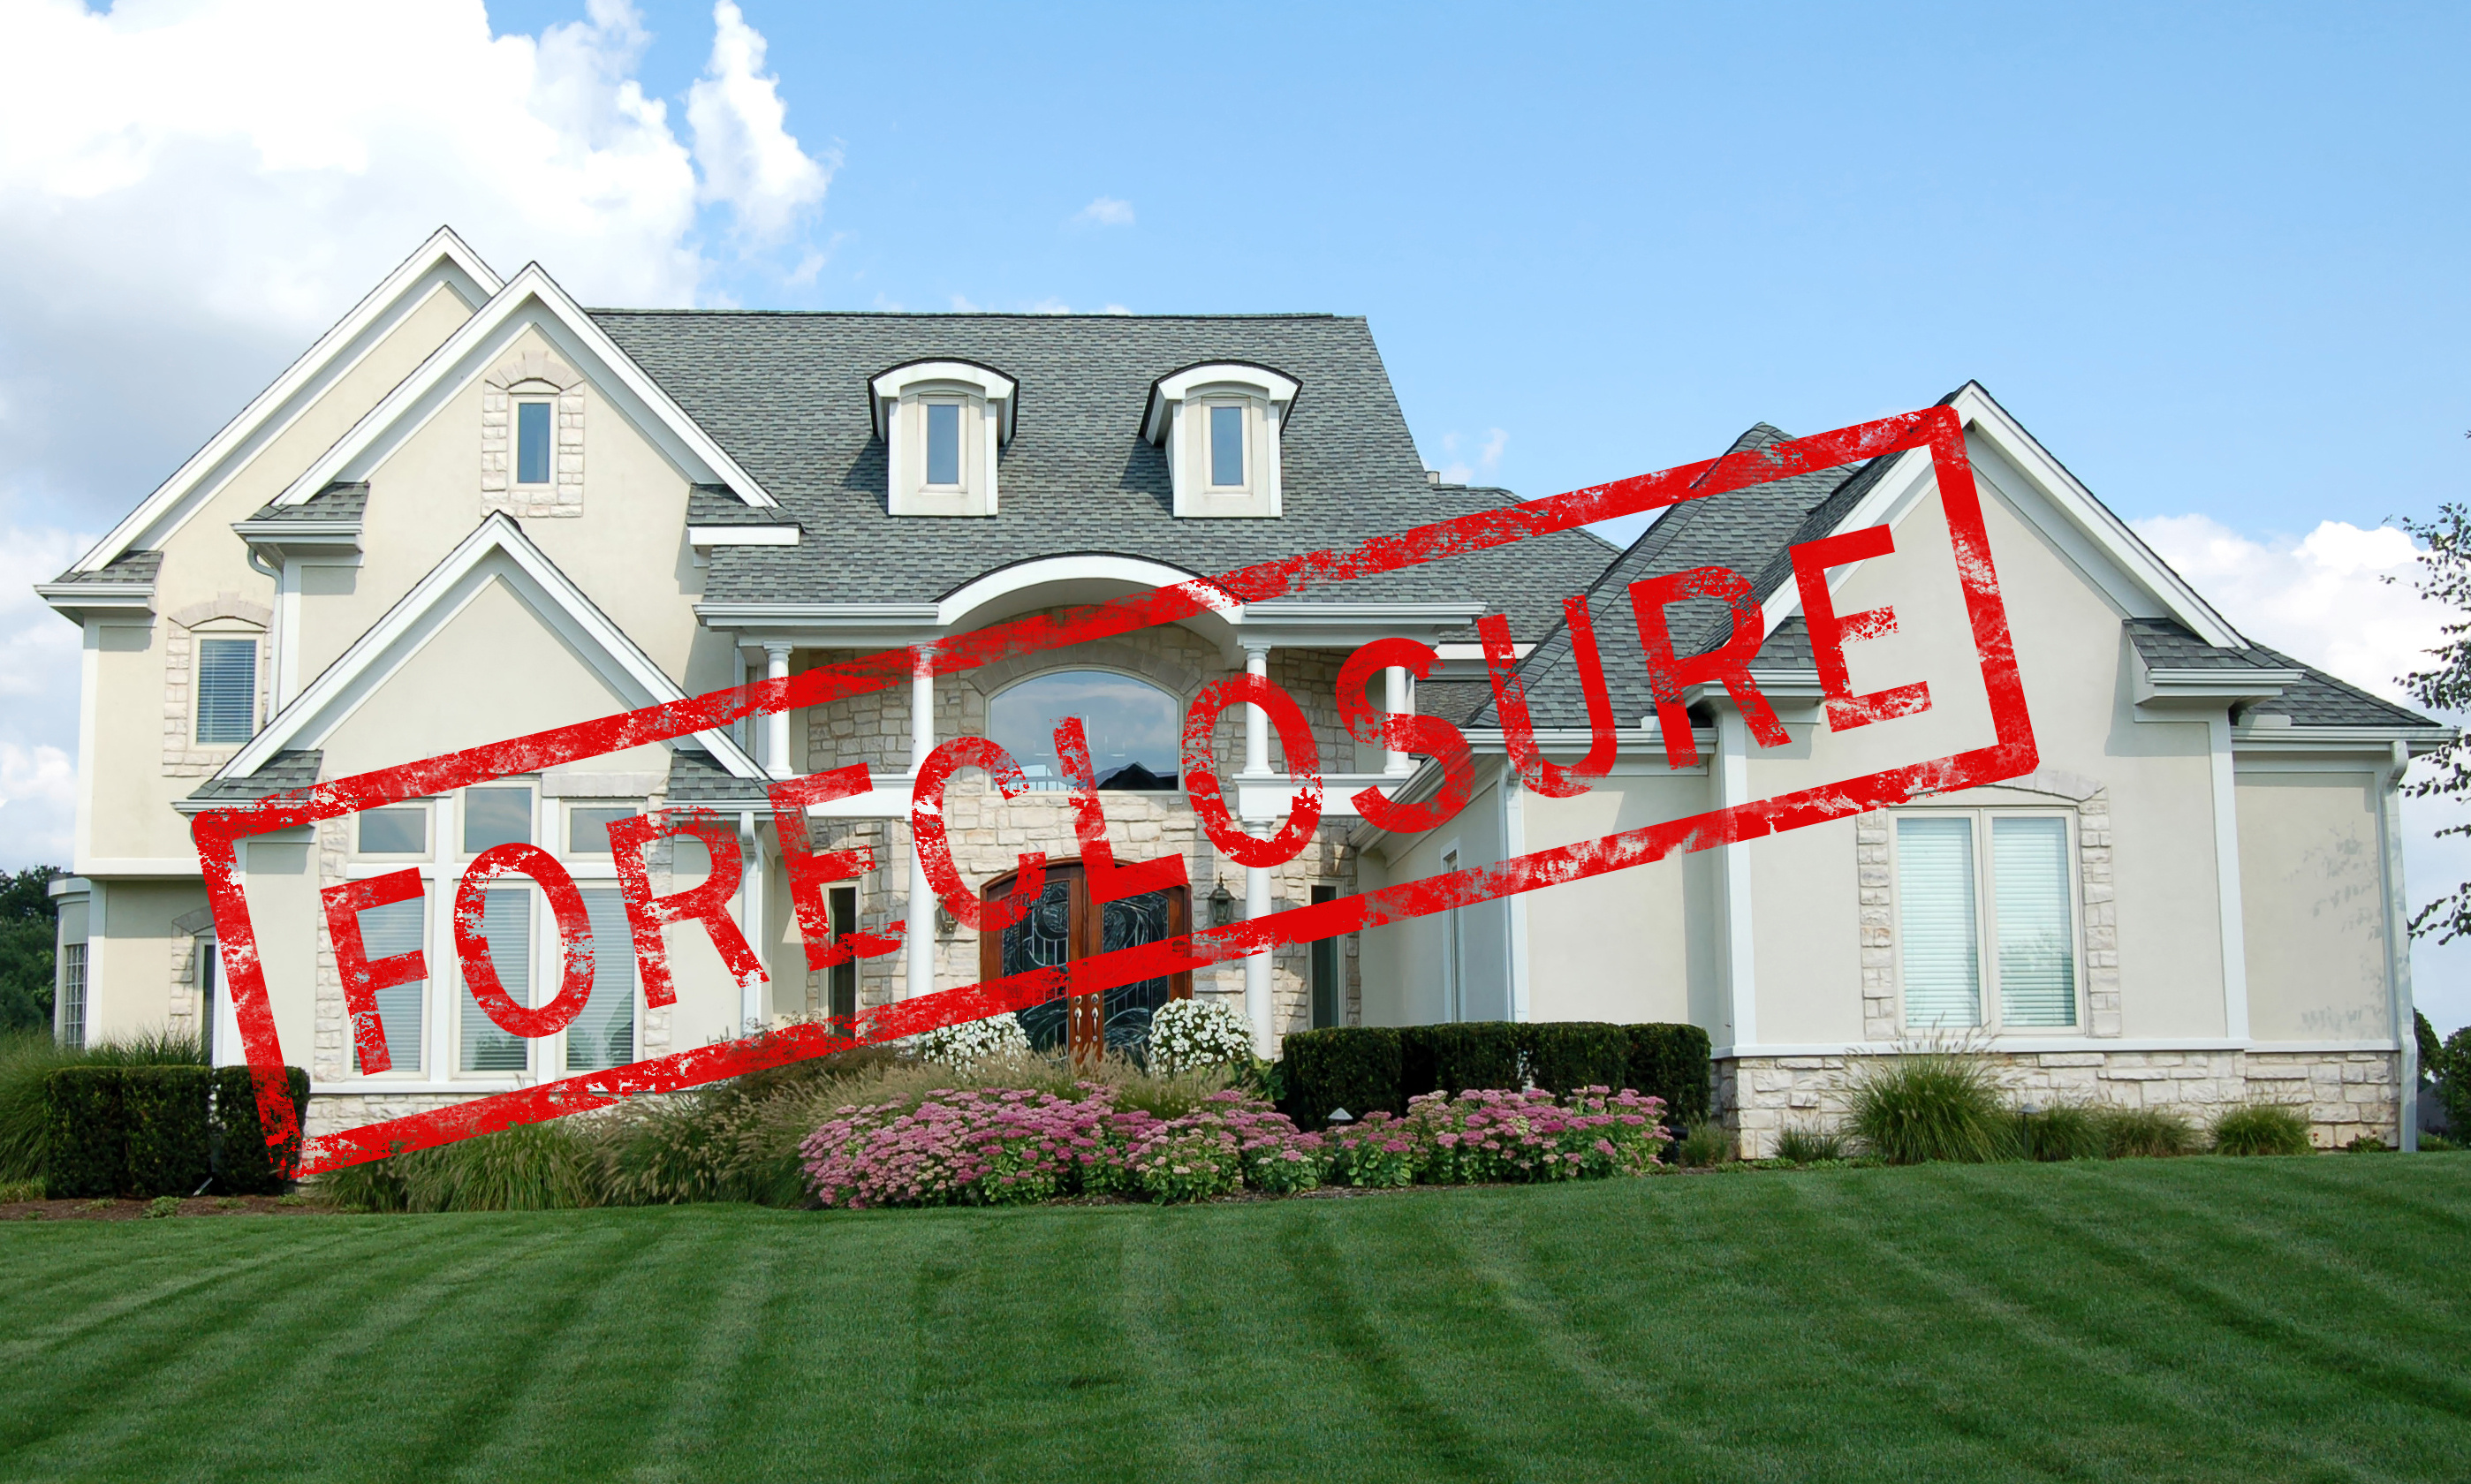 Call Eastern Appraisal Company, Inc. to discuss valuations regarding Westchester foreclosures